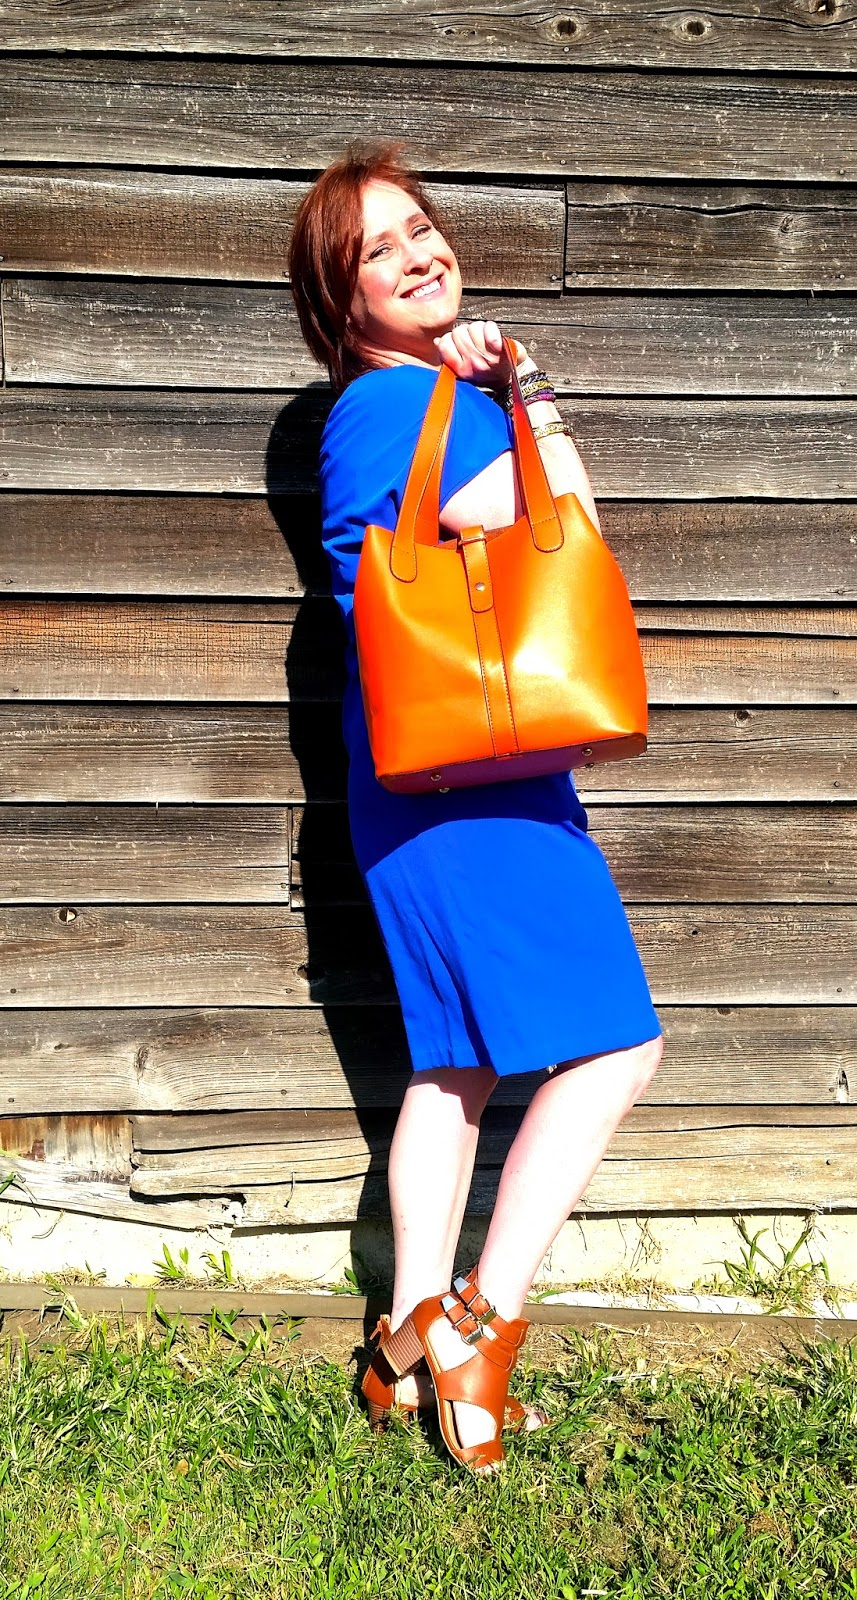 Affordable 2 in 1 Fashion Handbags For Fall